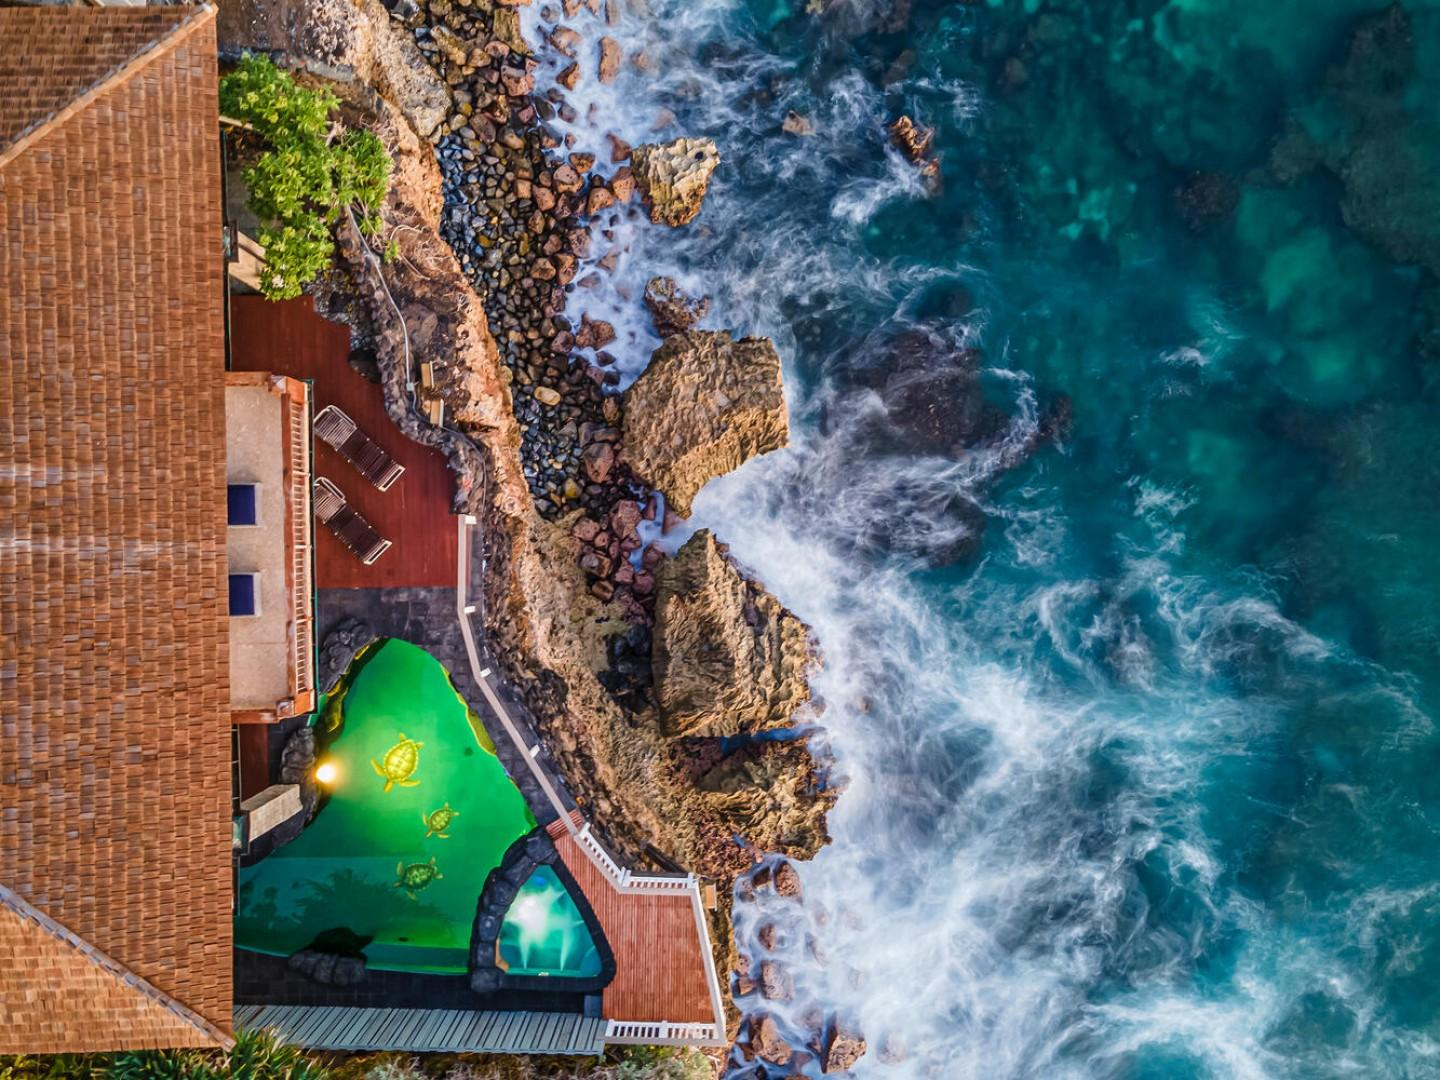 Aerial view of the oceanfront pool deck